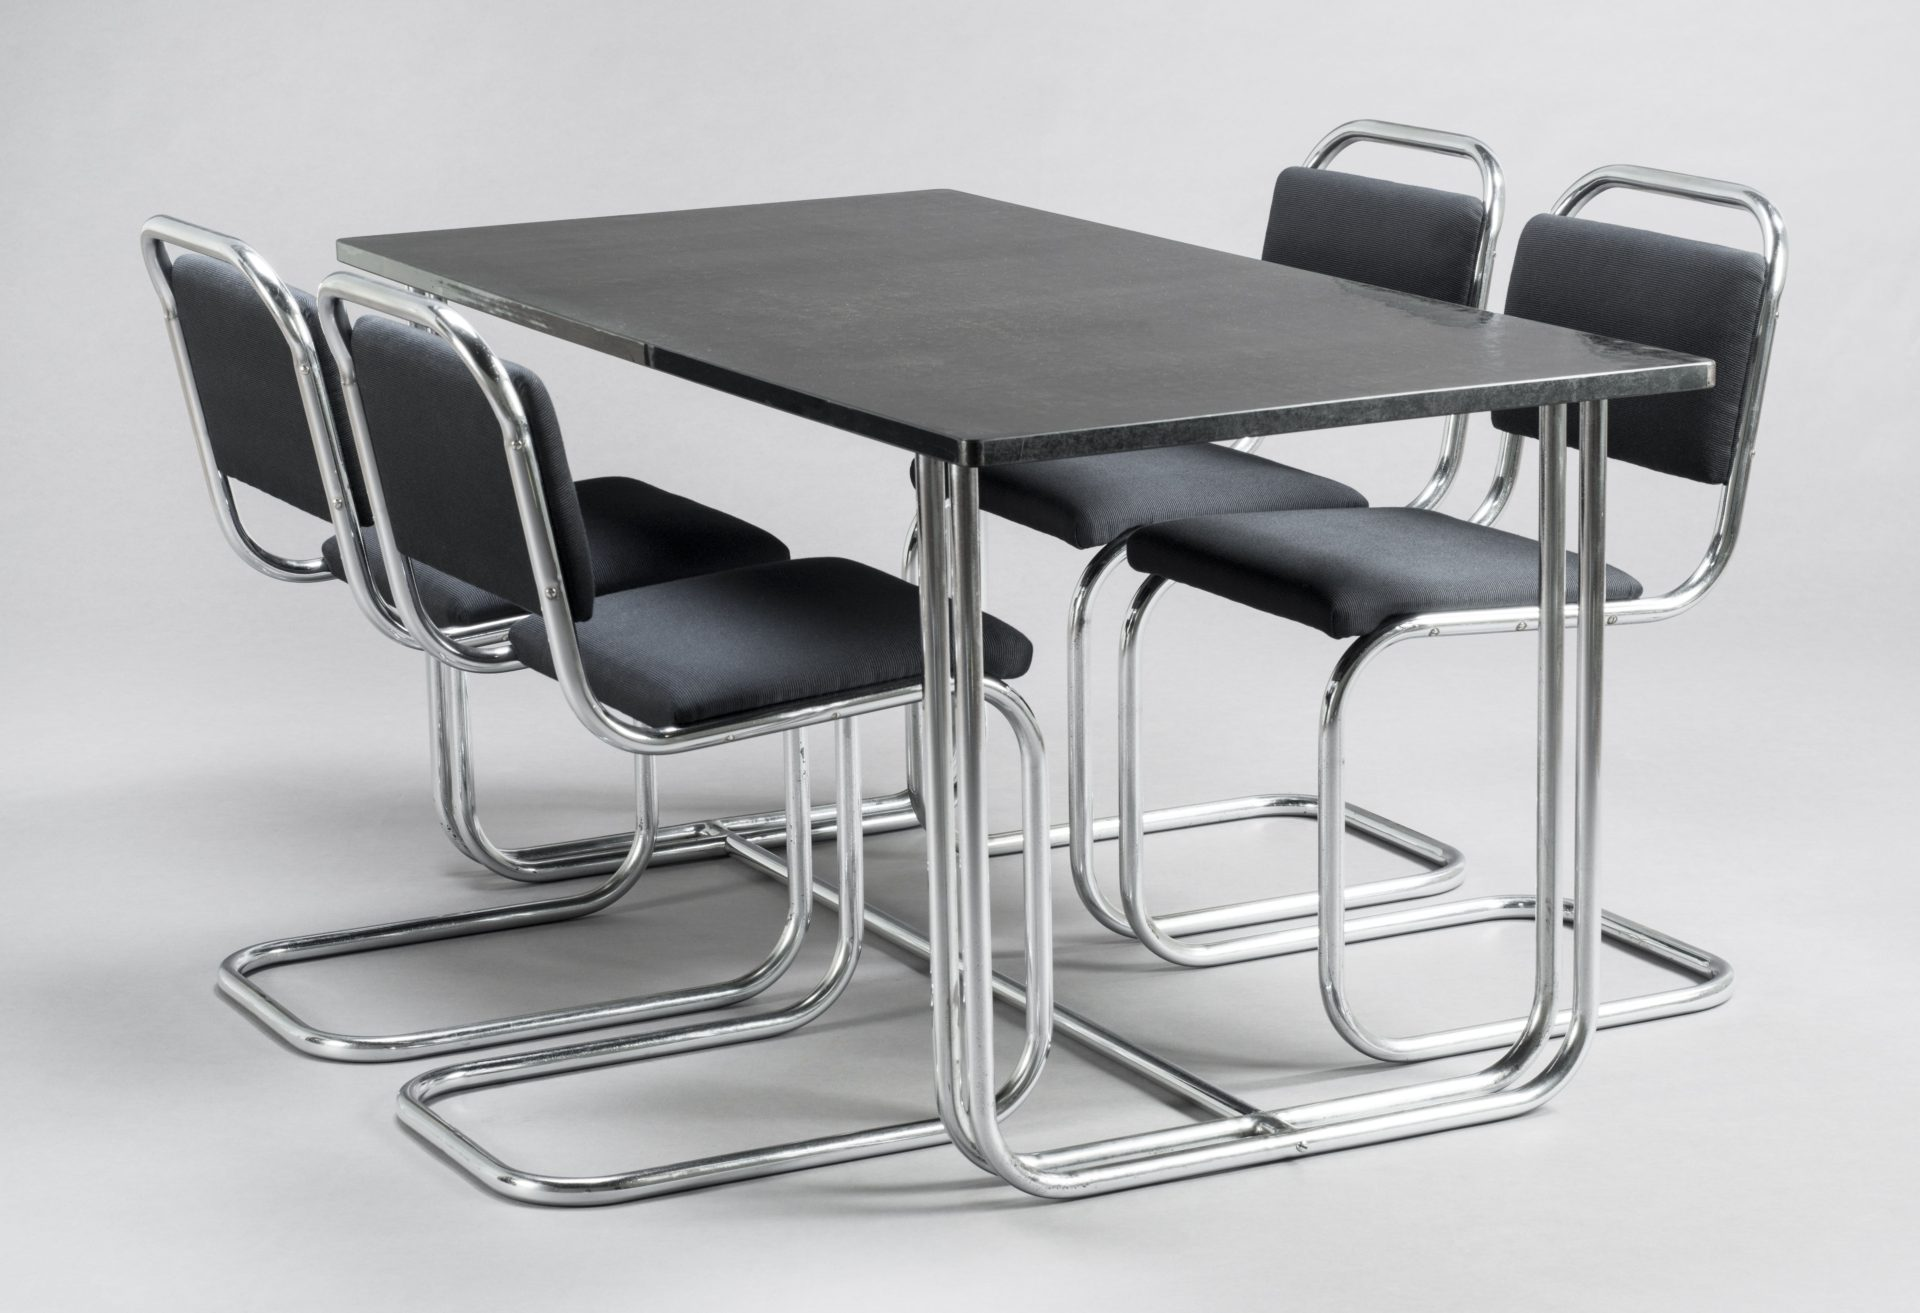 Dining table with four chairs. The table has a black Formica top and continuous bent-tubular-steel legs. The cantilevered chairs are also made of continuous tubes of steel with black-upholstered cushions.